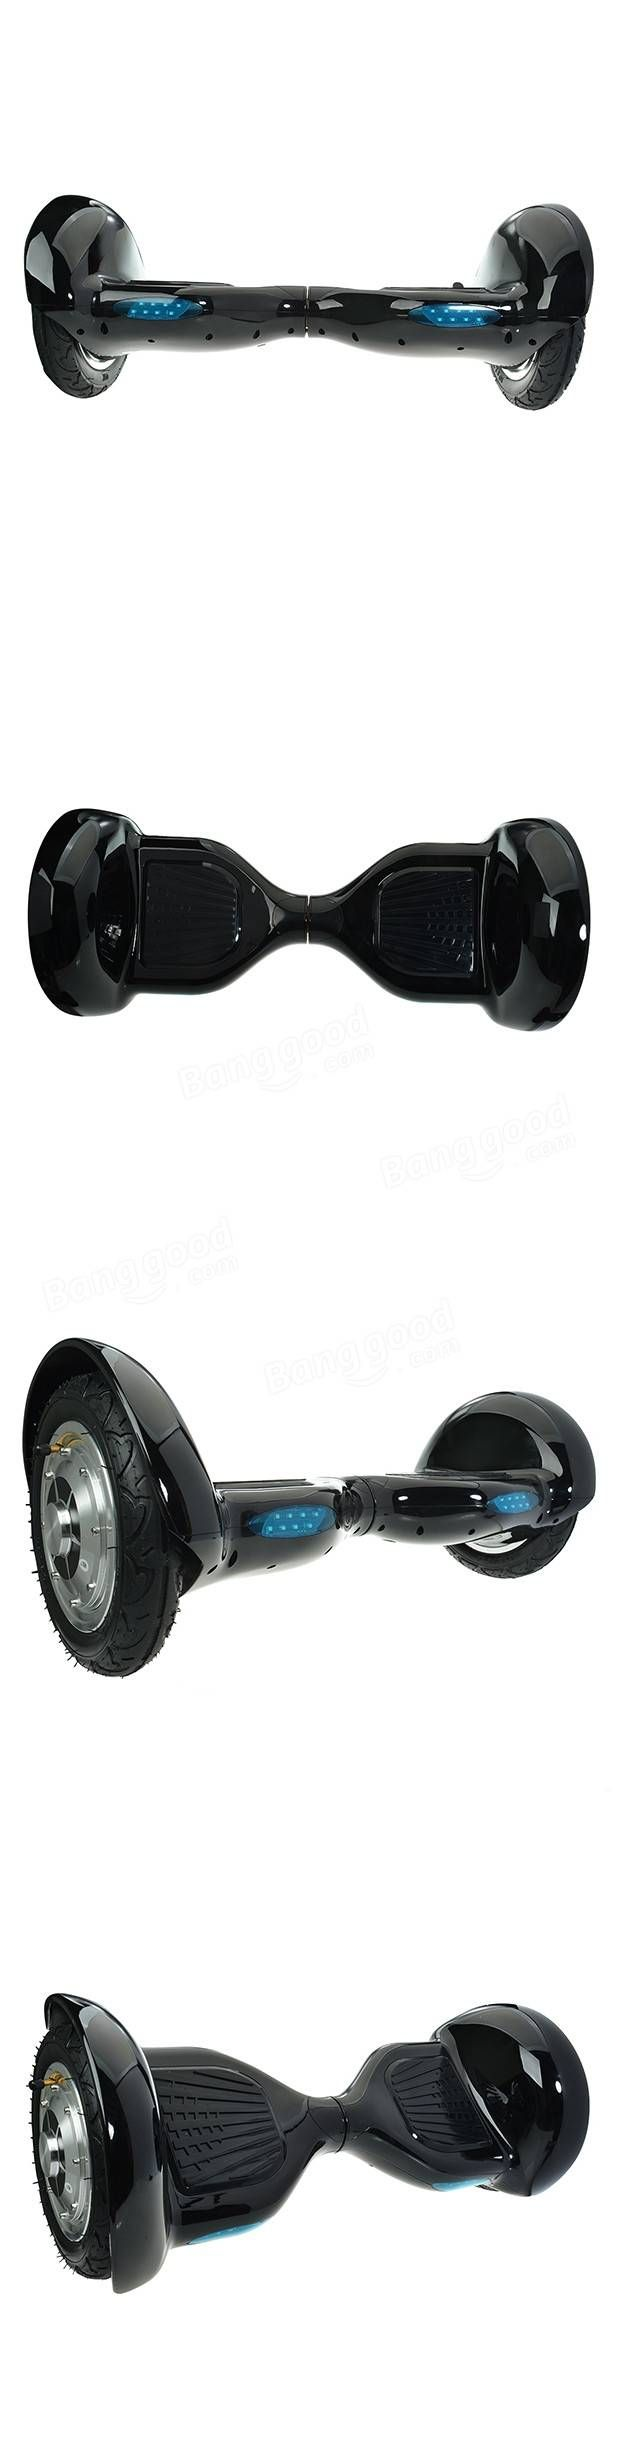 Q9 4400mah battery 10 inch pneumatic tire two wheel electric twisting scooter sale banggood